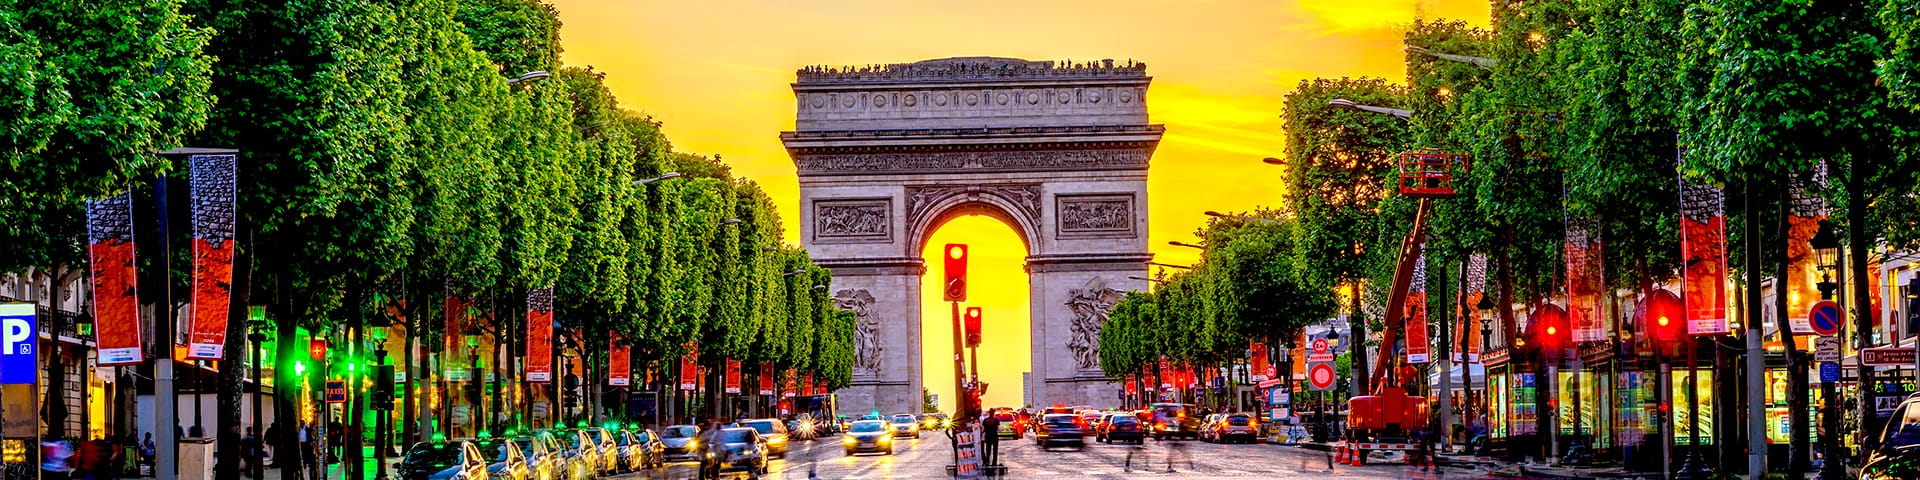 Champs-Elysees and Arc de Triomphe at sunset in Paris